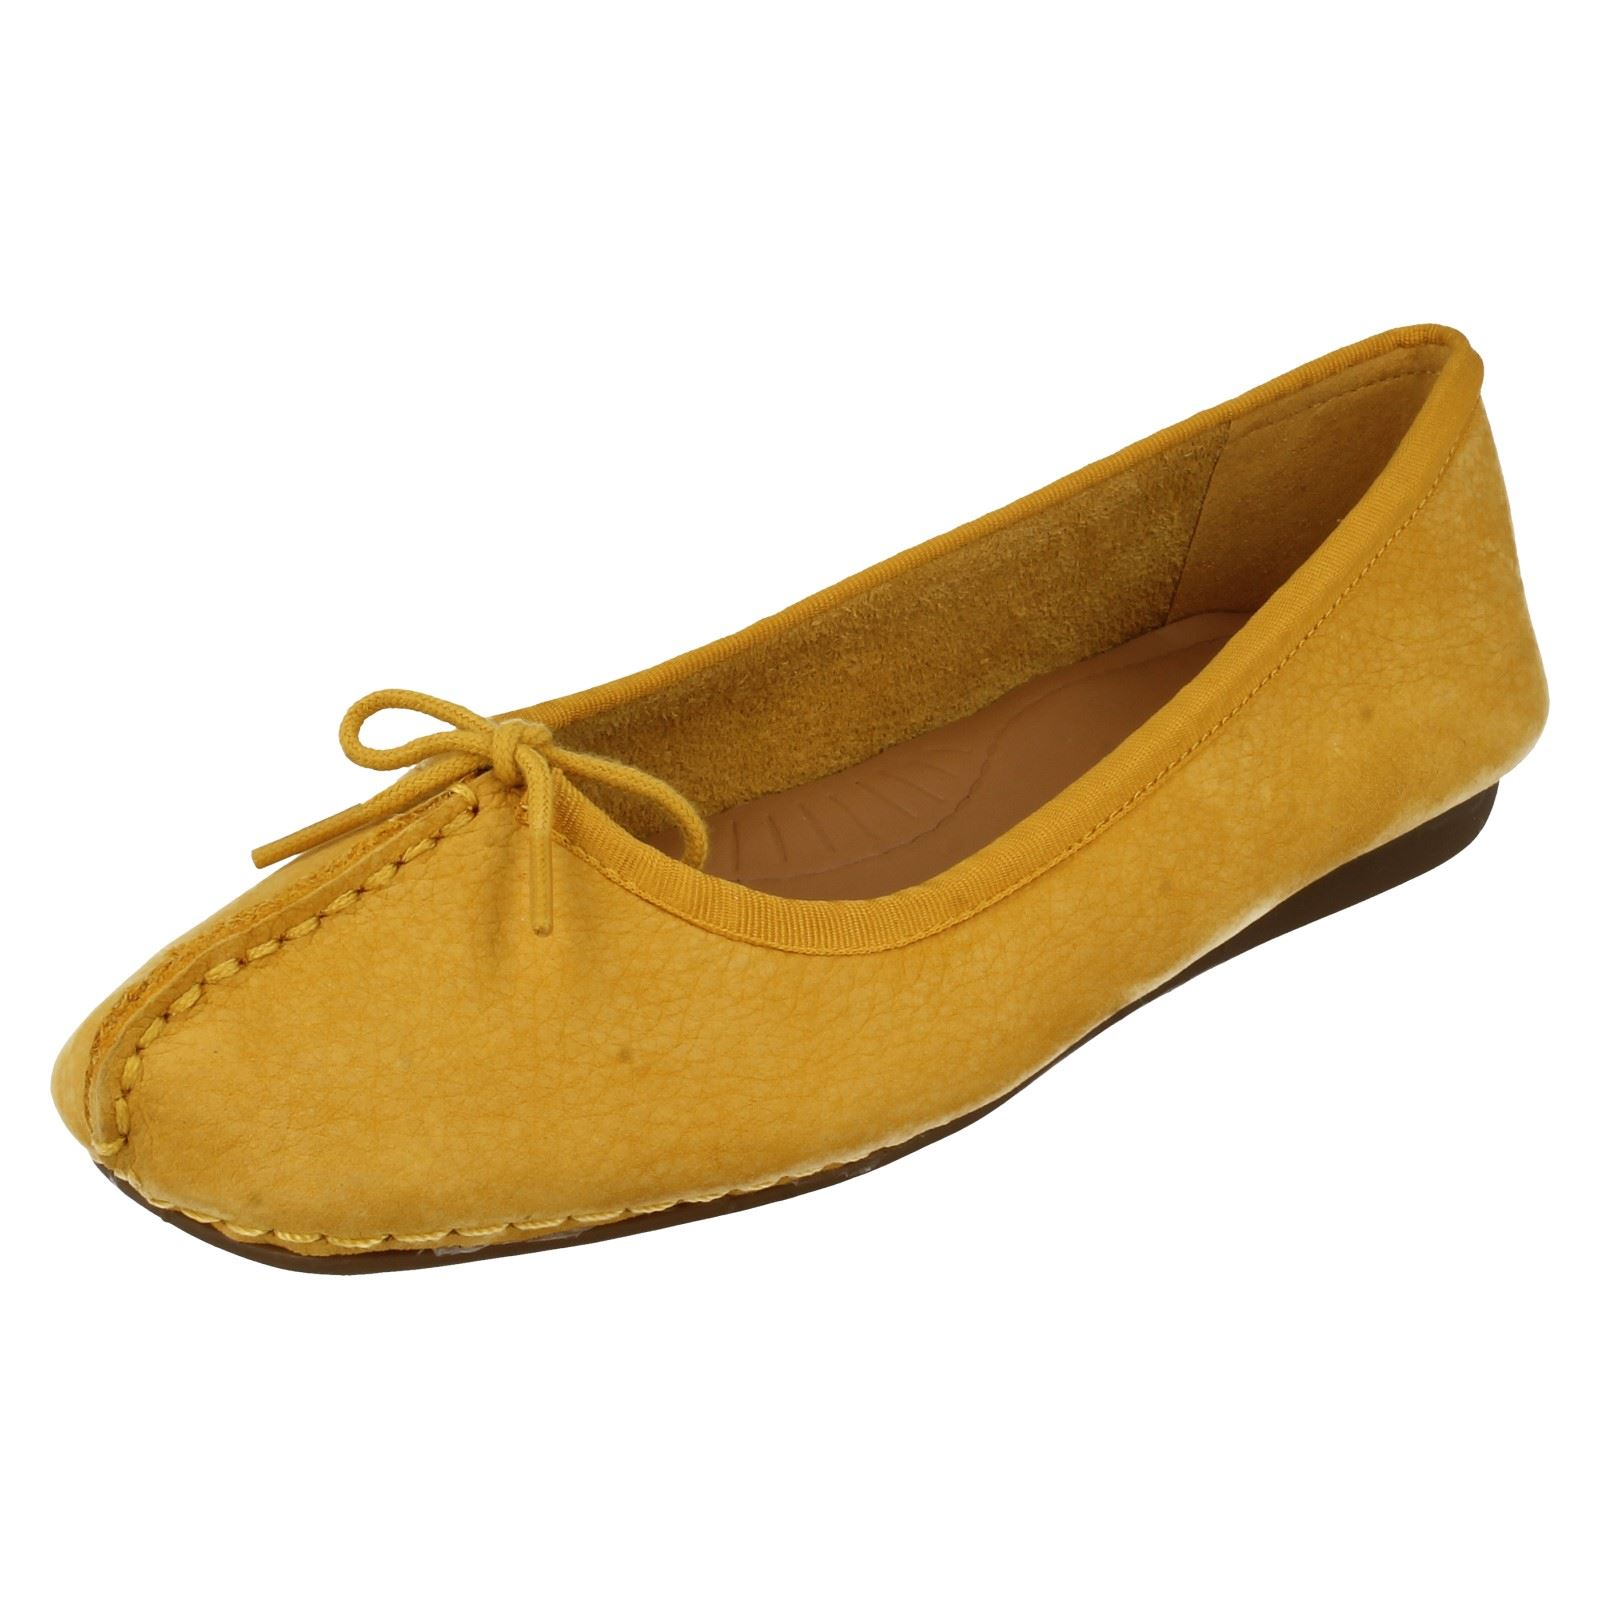 Ladies Clarks Comfortable Flats Freckle Ice Ebay